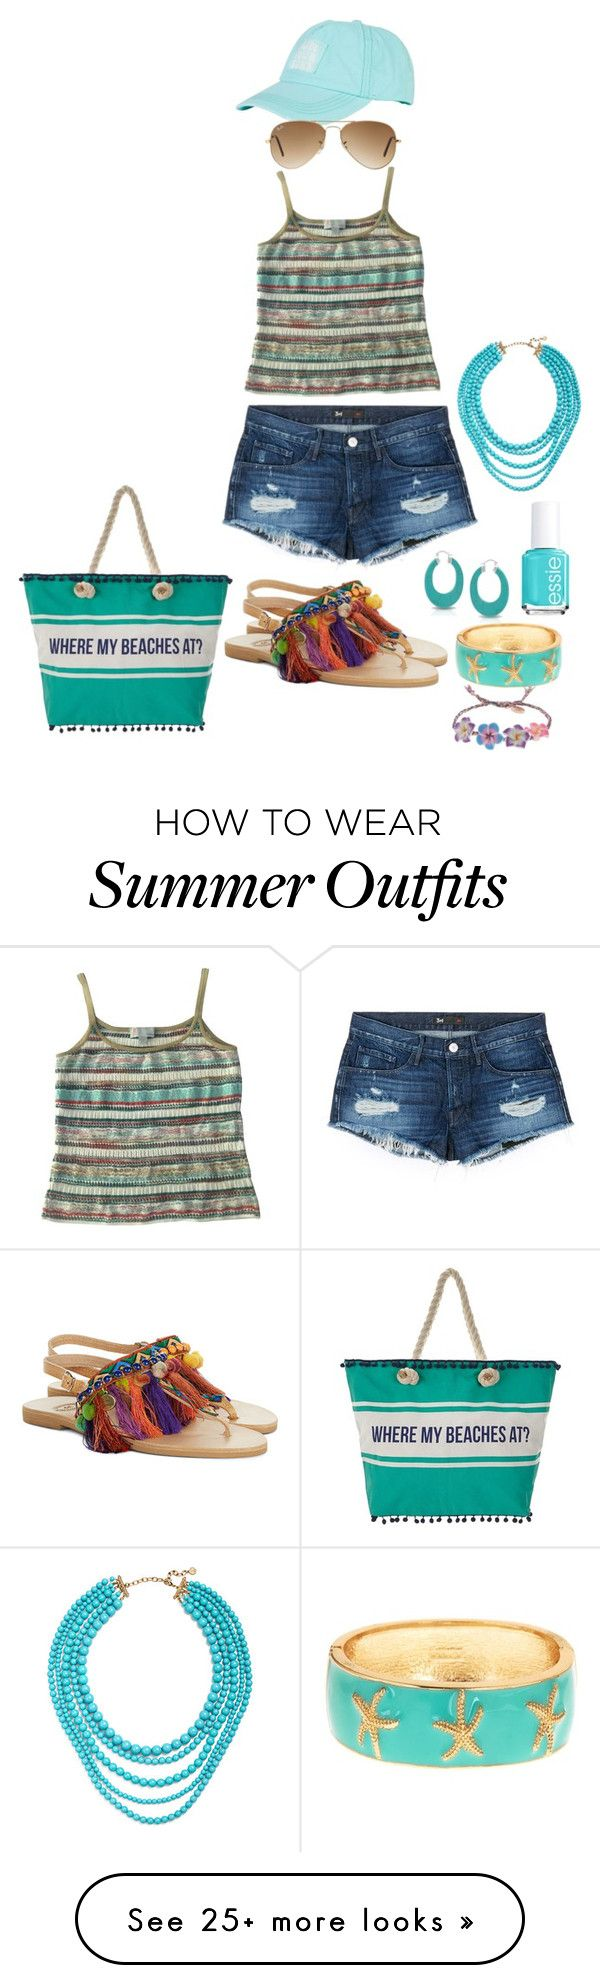 """""""summer in turquoise"""" by muslifa on Polyvore featuring Missoni, 3x1, Elina Linardaki, Billabong, Ray-Ban, Bling Jewelry, Fornash, Venessa Arizaga, Essie and R.J. Graziano"""